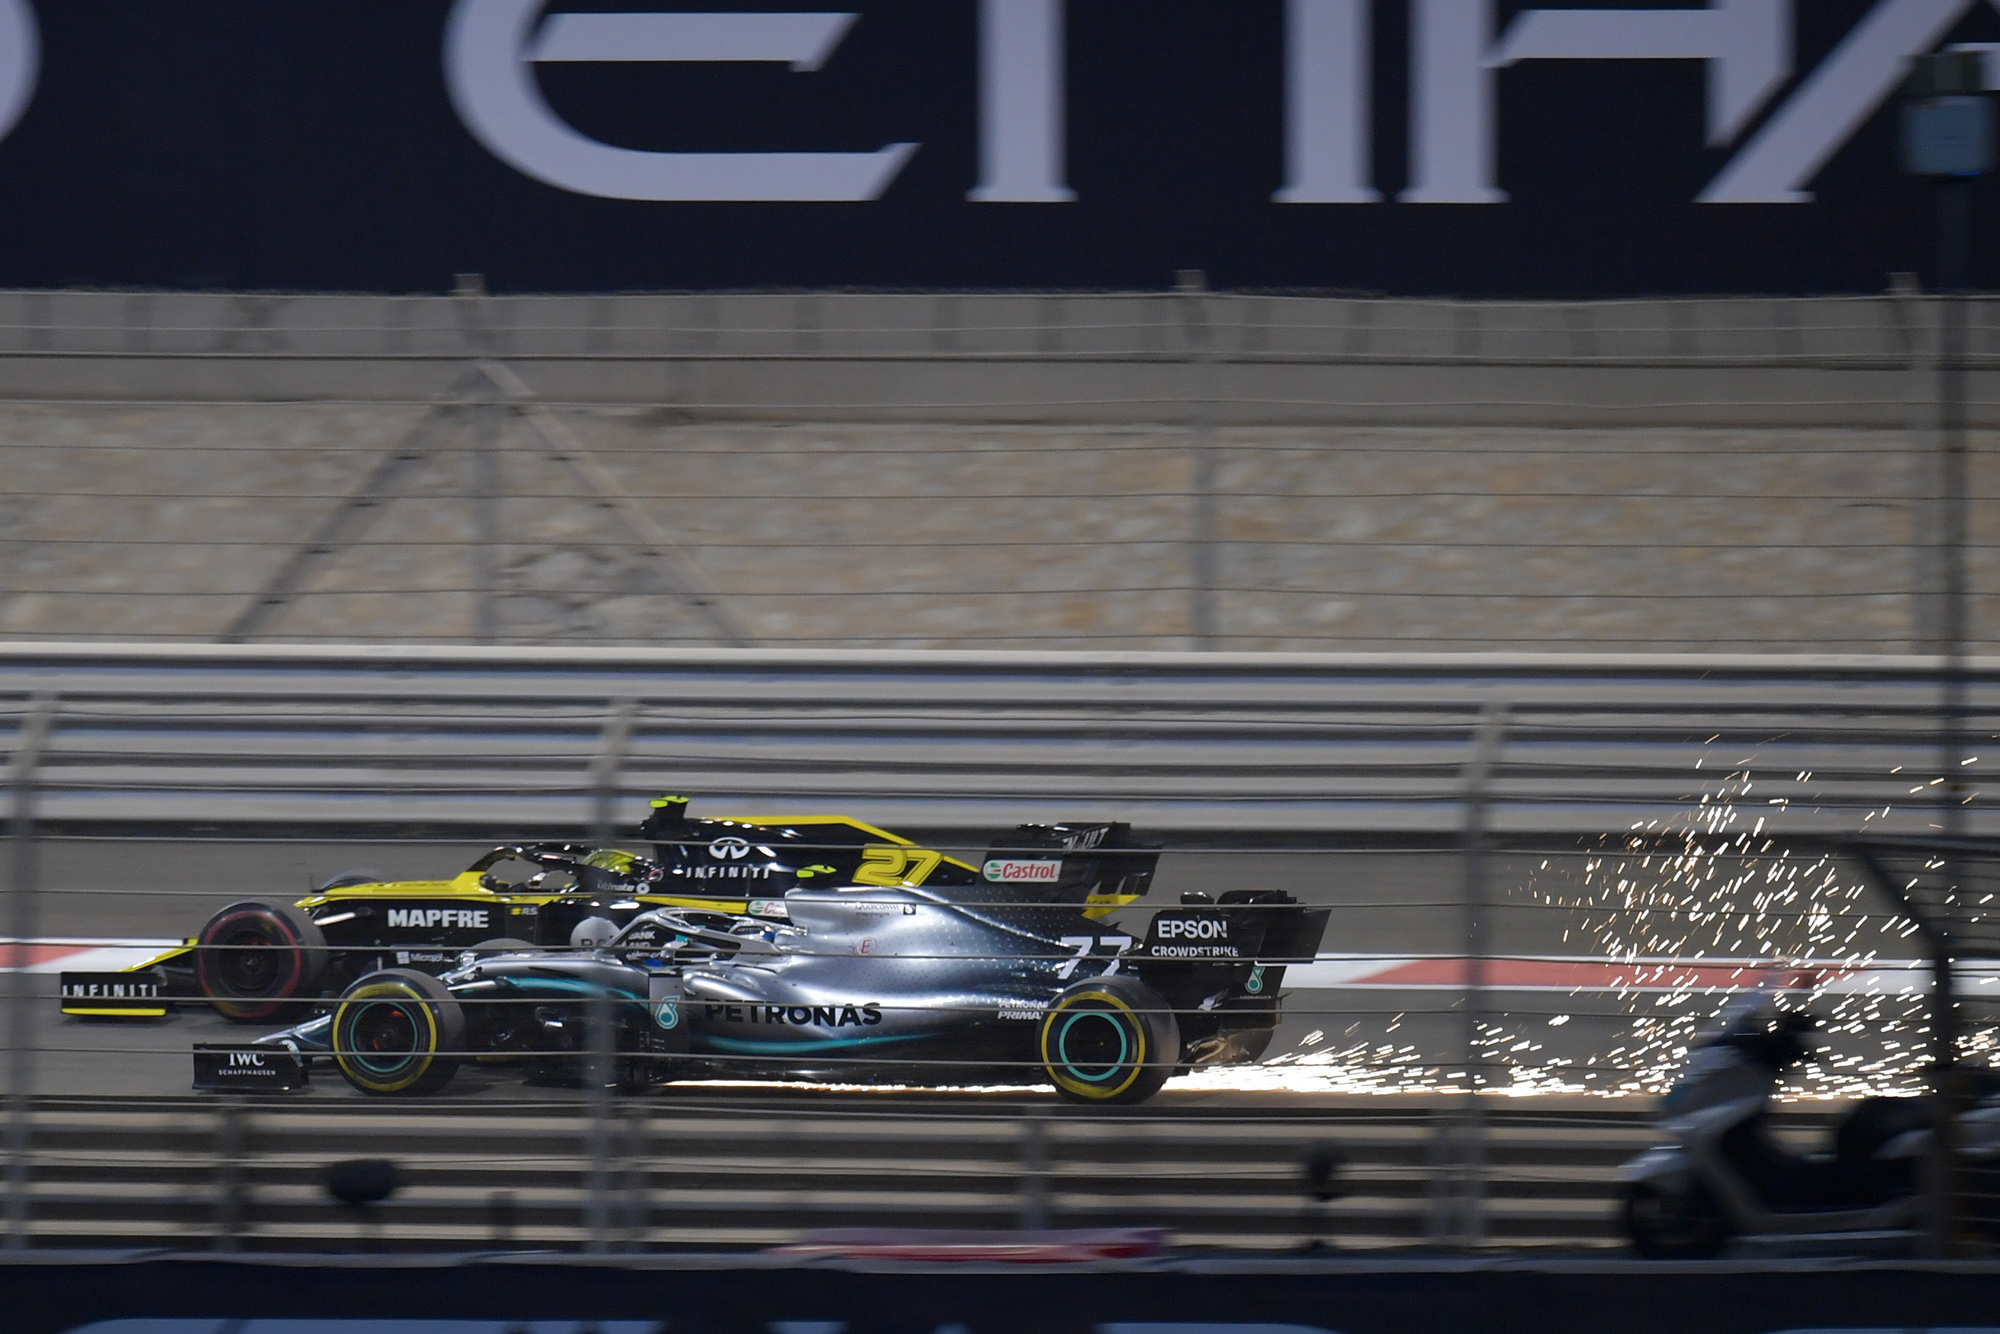 Valtteri Bottas overtakes Nico Hulkenberg during the 2019 Abu Dhabi Grand Prix